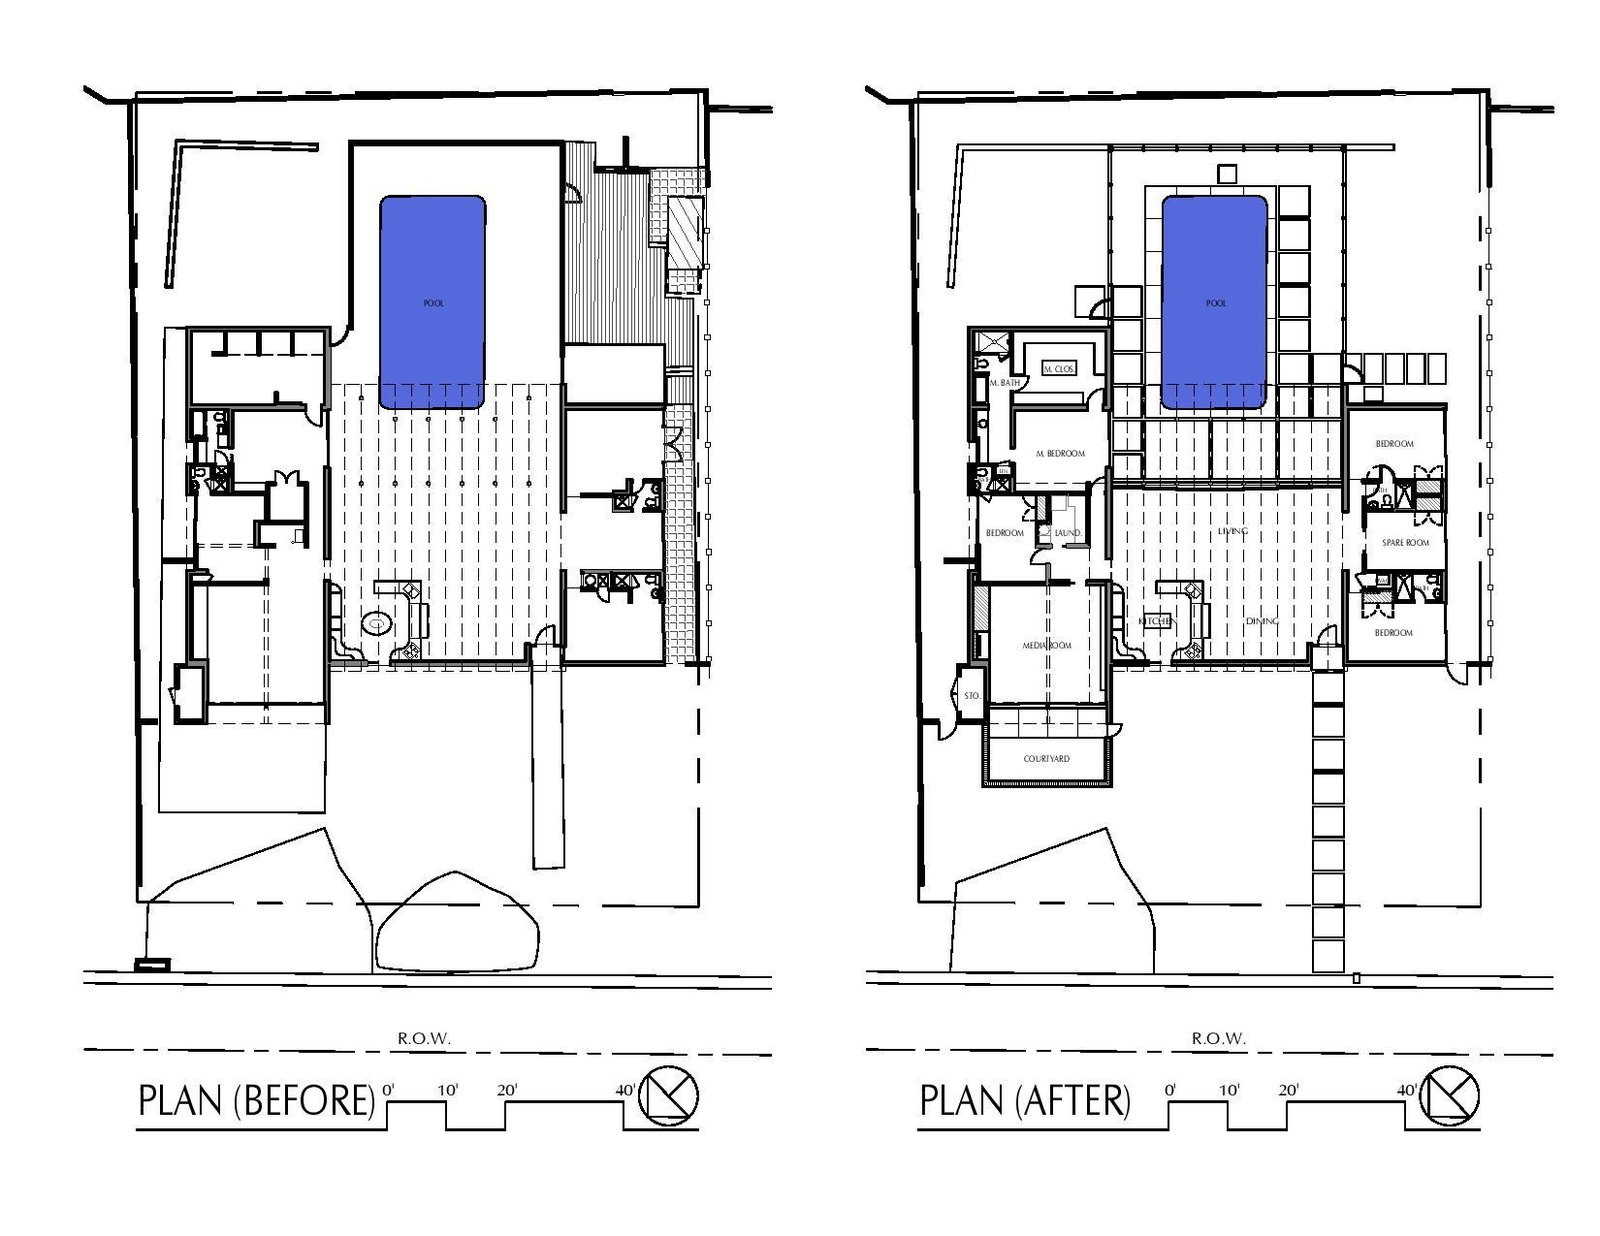 Before and after plans of the Arguedas House